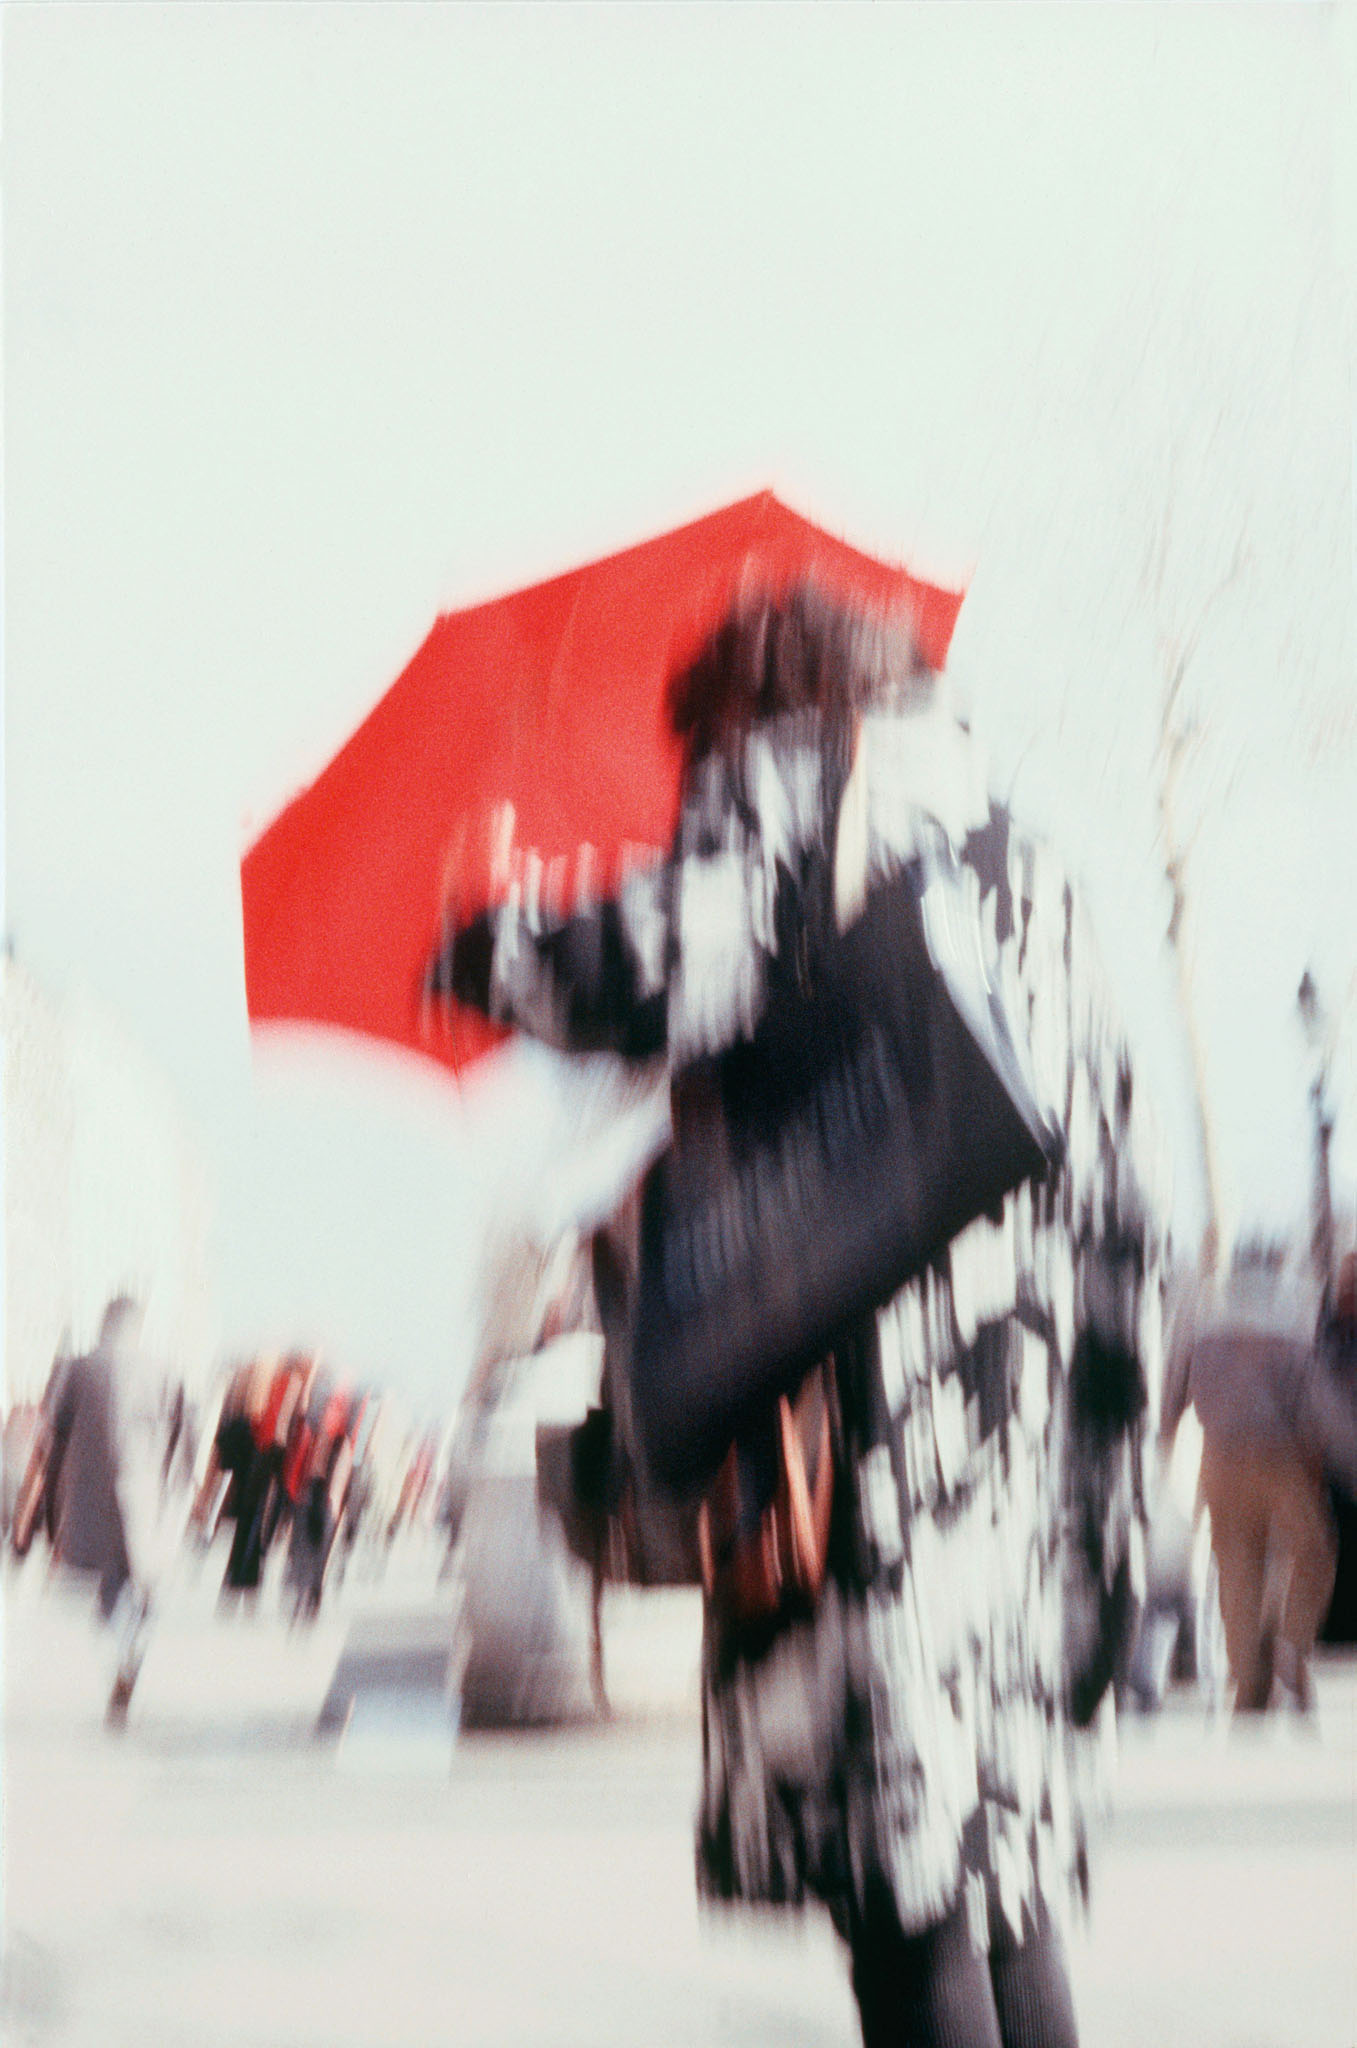 #01_'Lady with red umbrella'.jpg